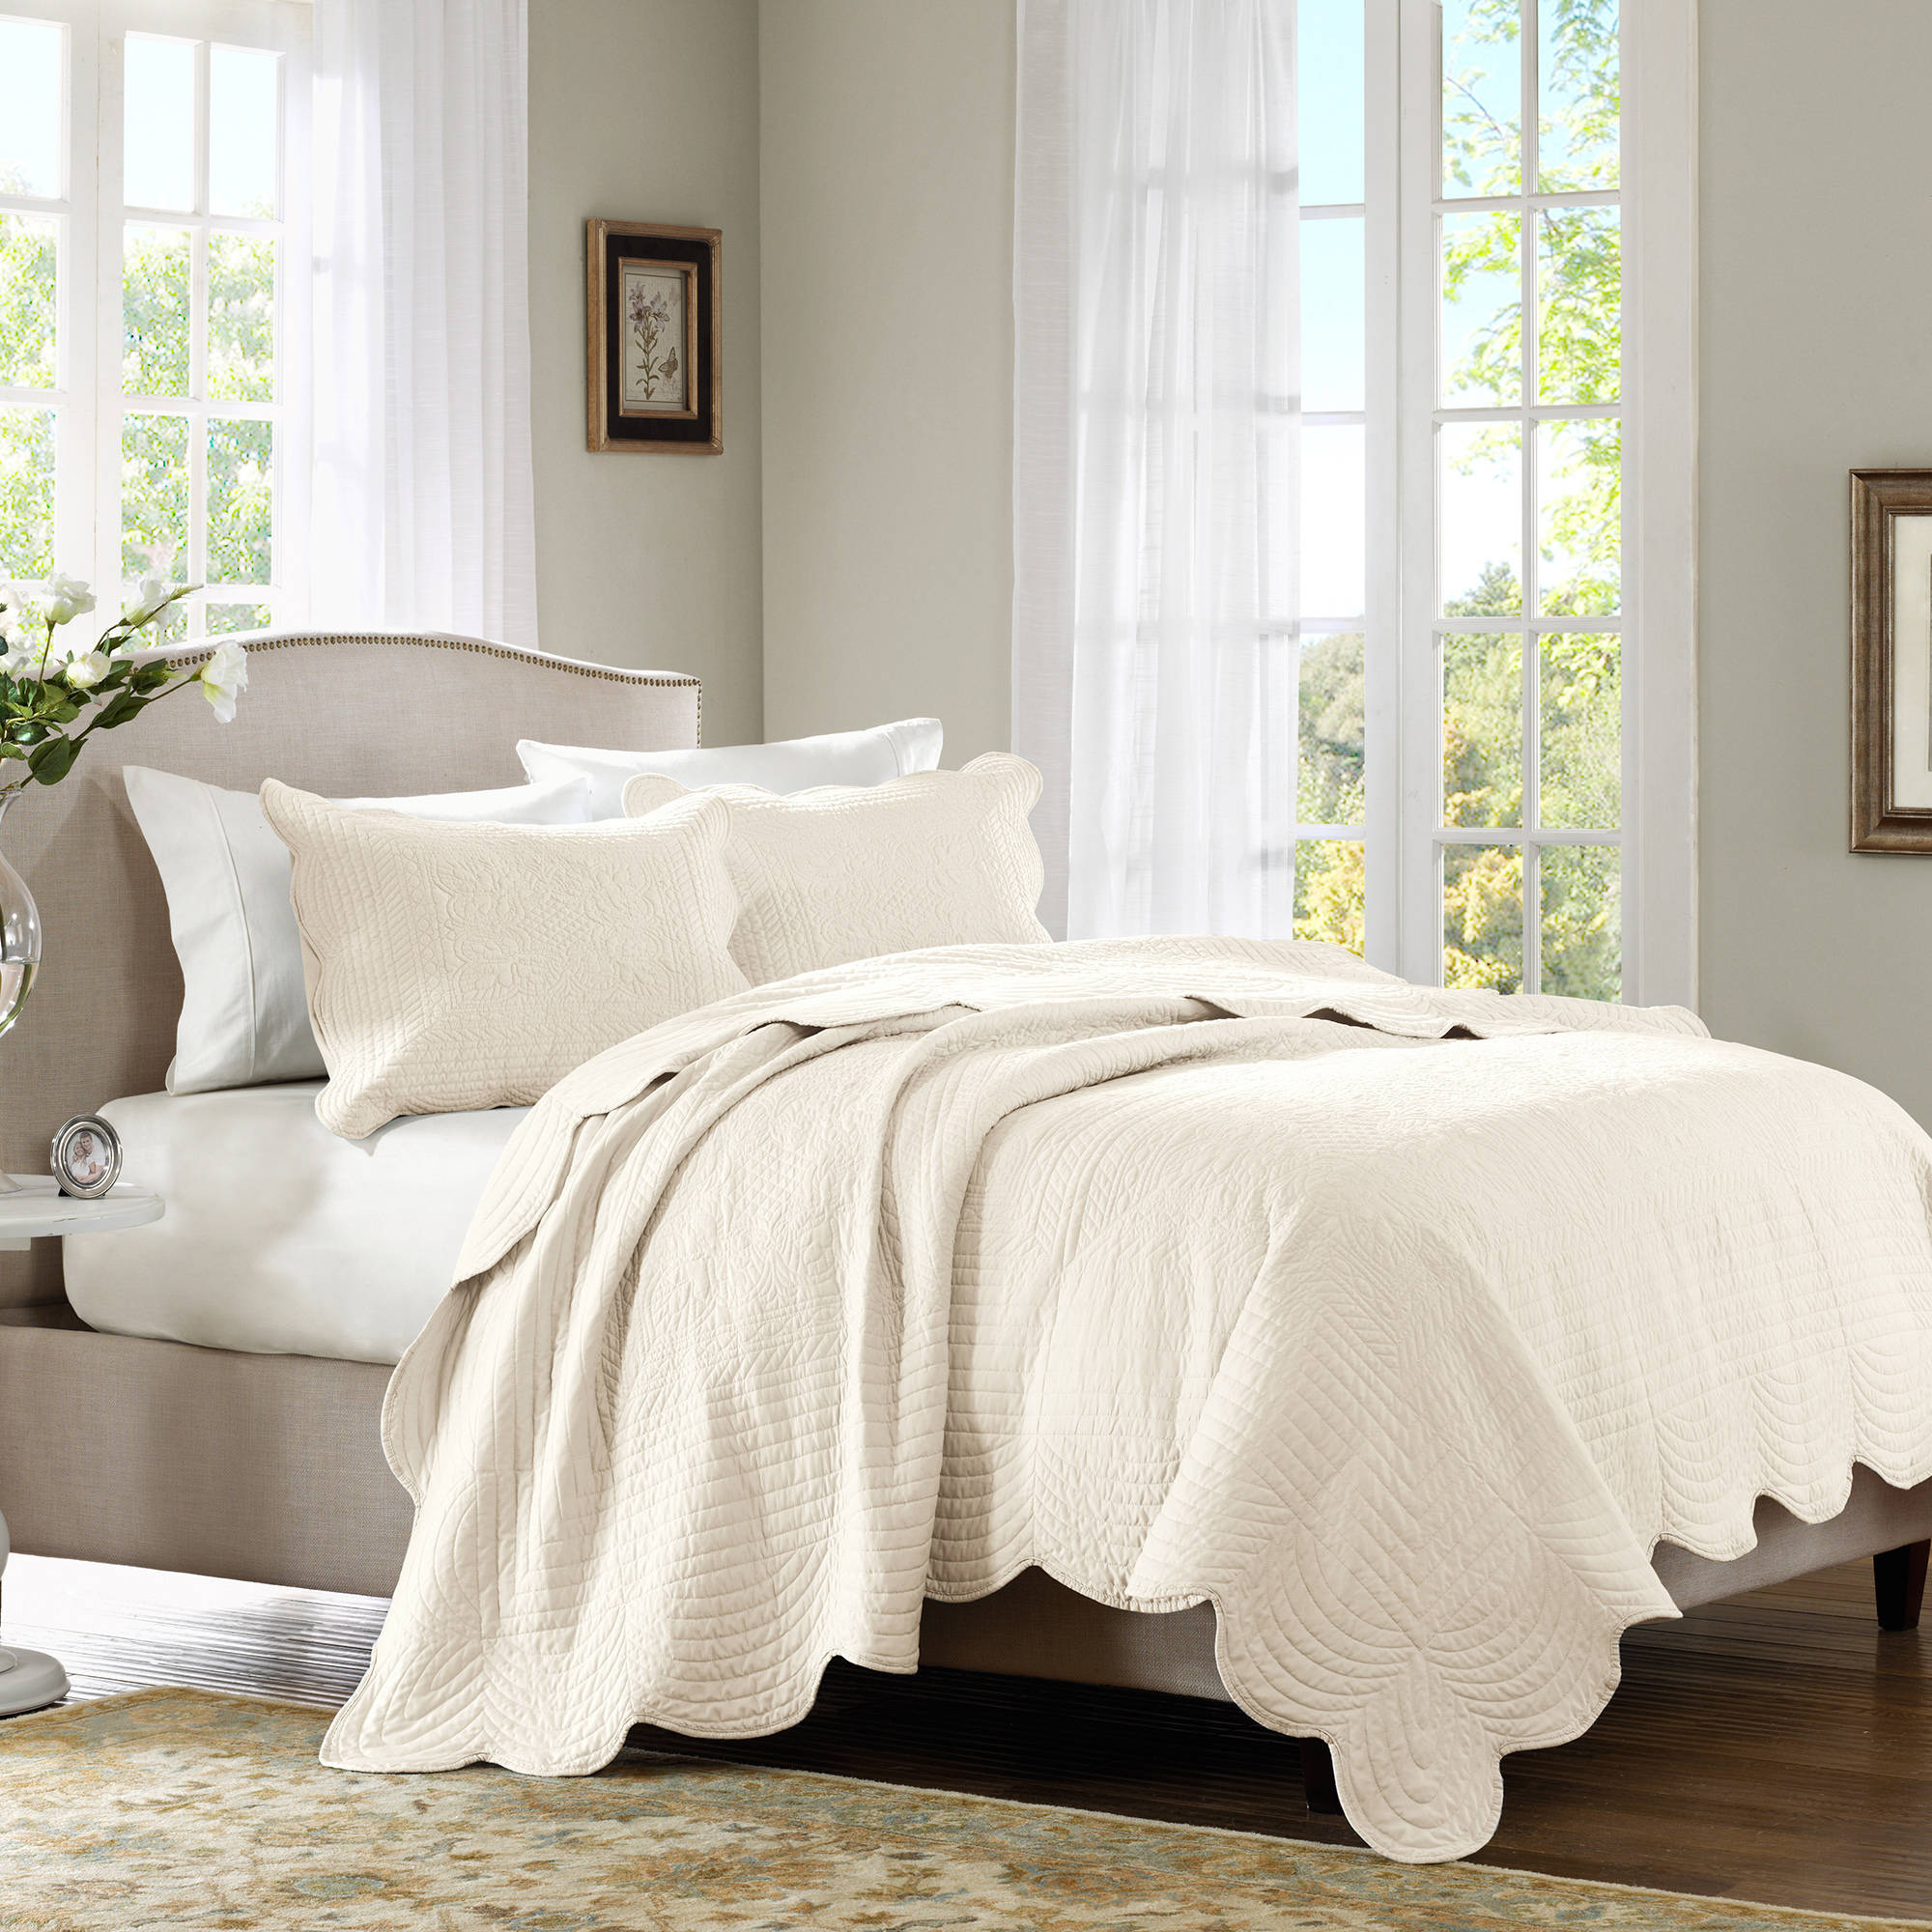 queen cheap full bed sets bedspreads twin covers bedding bedspread king gray quilted quilt size luxury quilts amazing